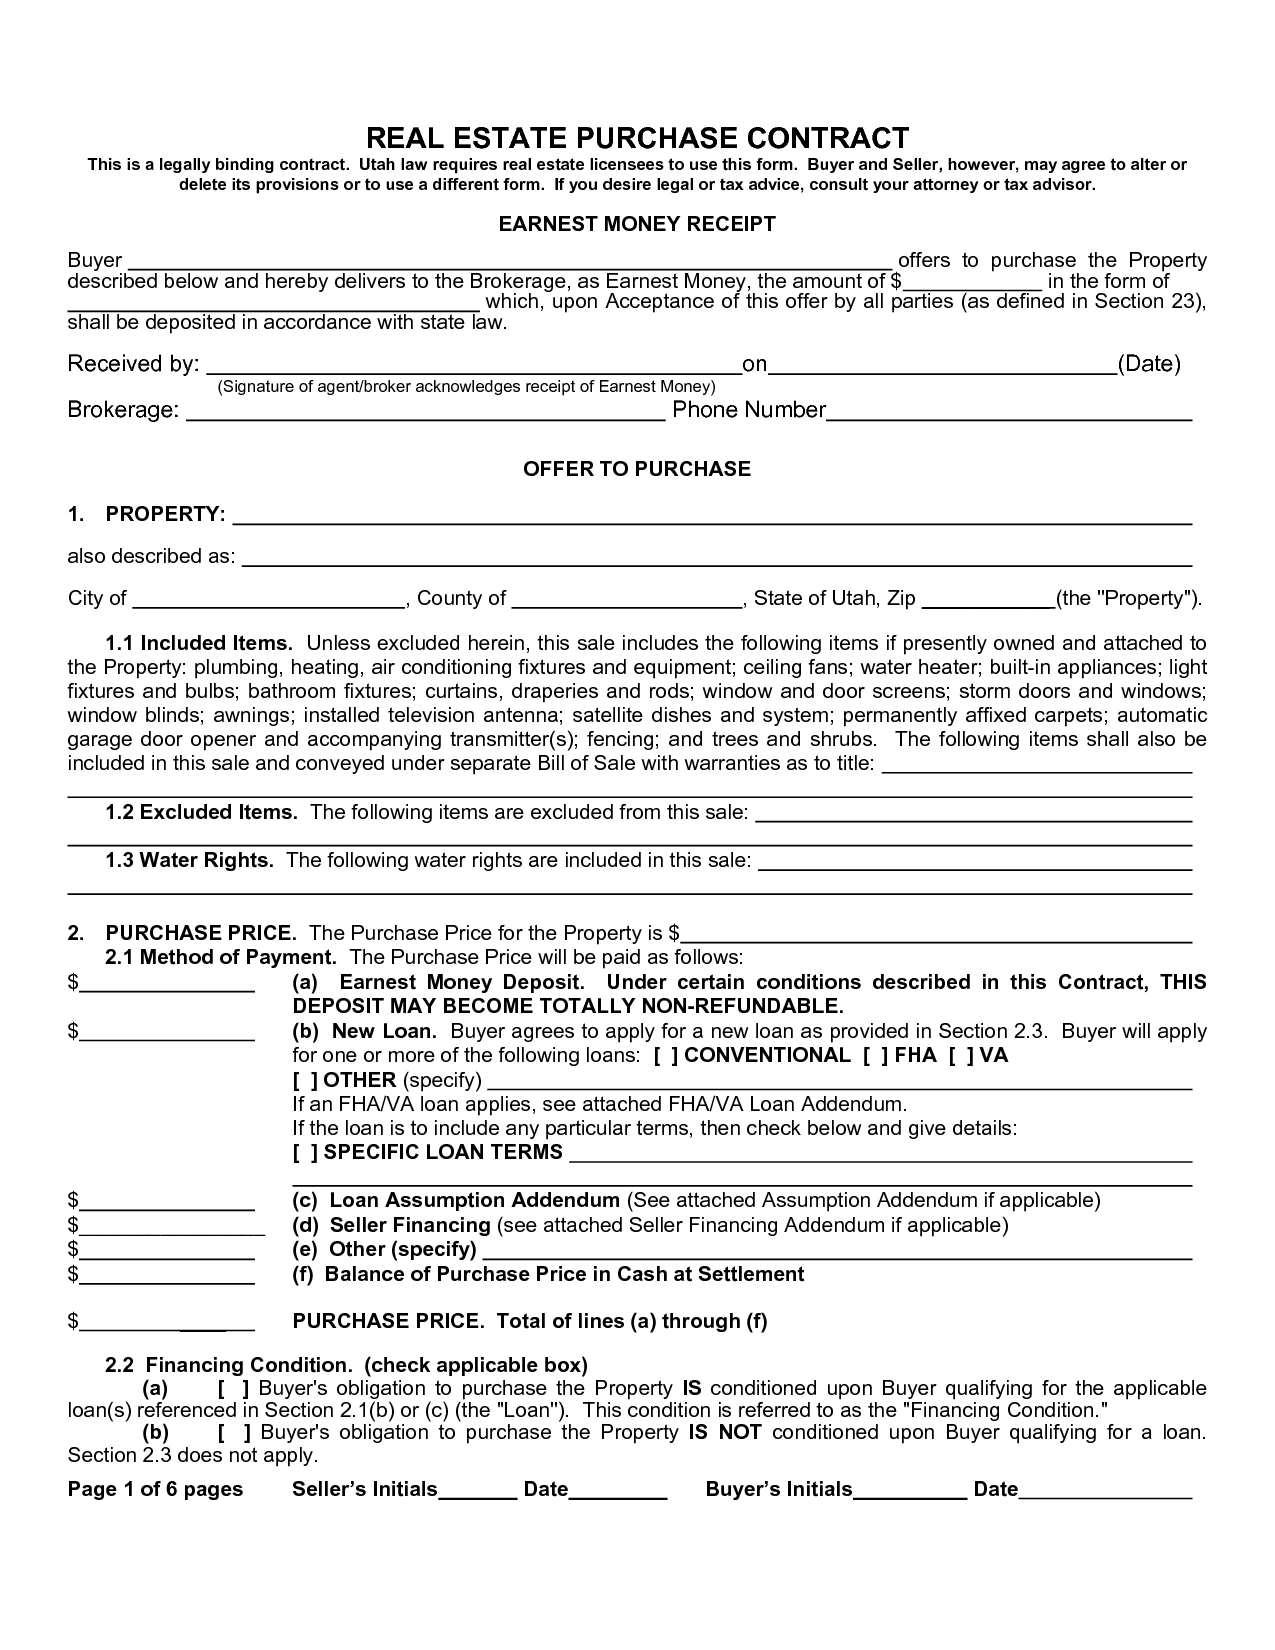 Real Estate Purchase Agreement Form Sample Image Gallery - ImgGrid ...